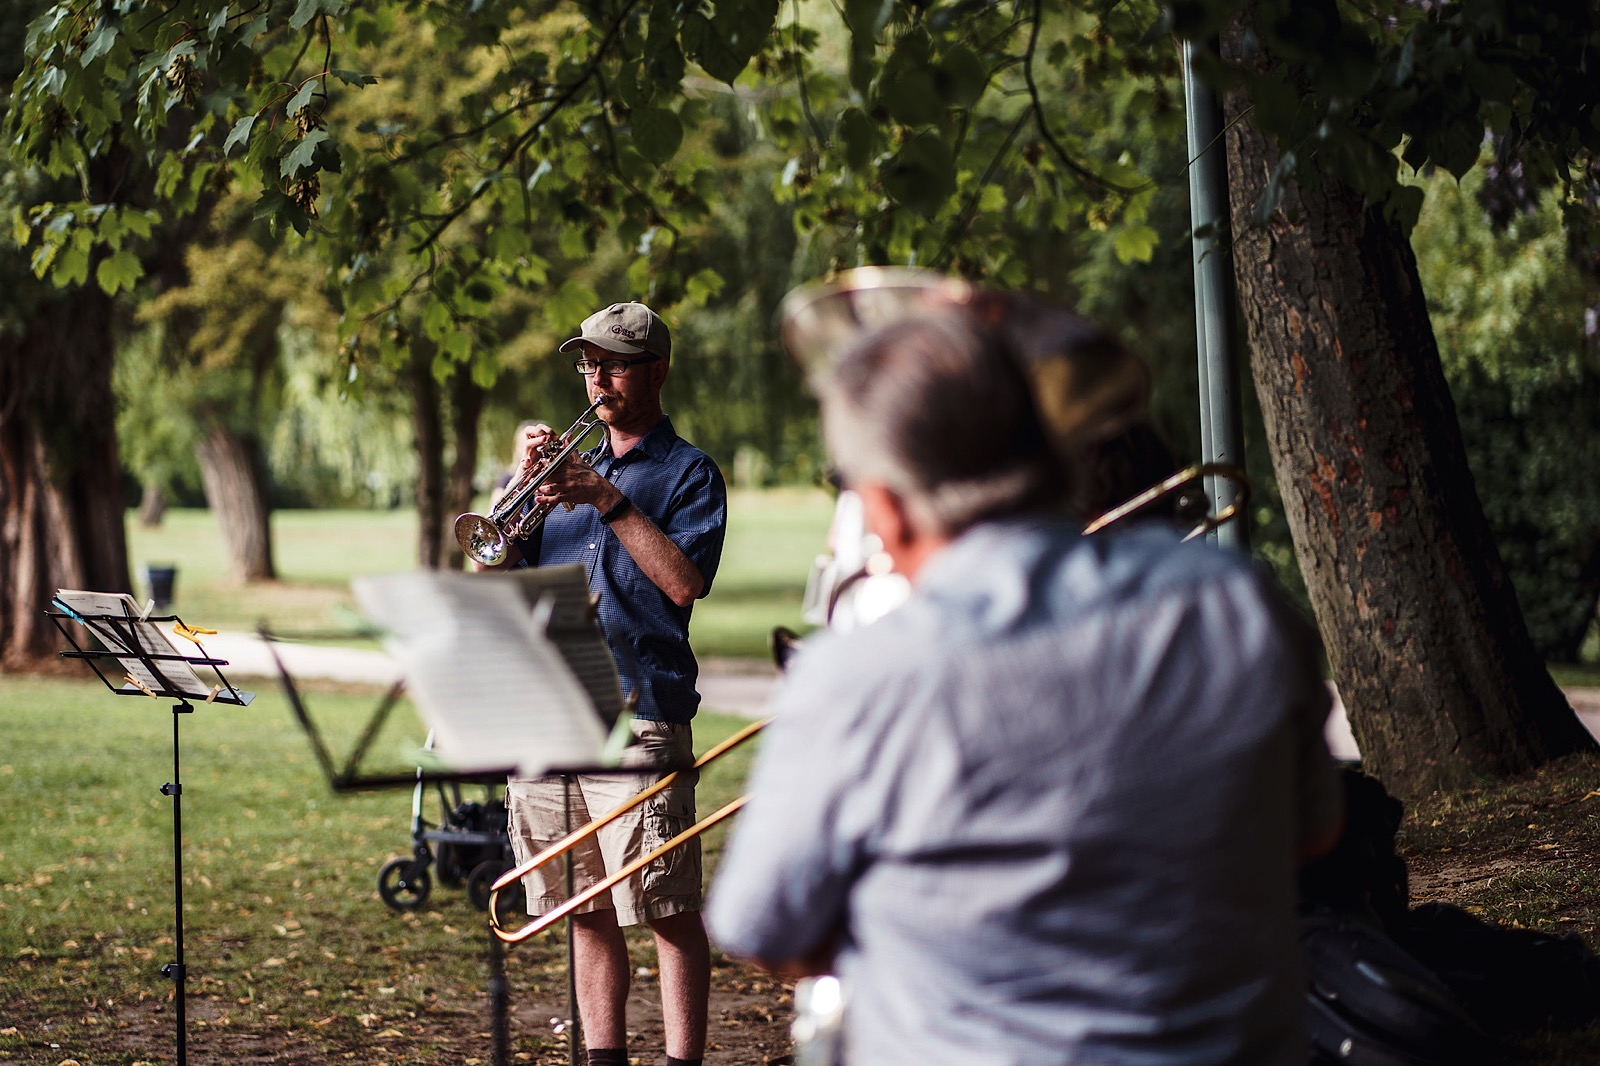 Musicians in Park practising outdoors